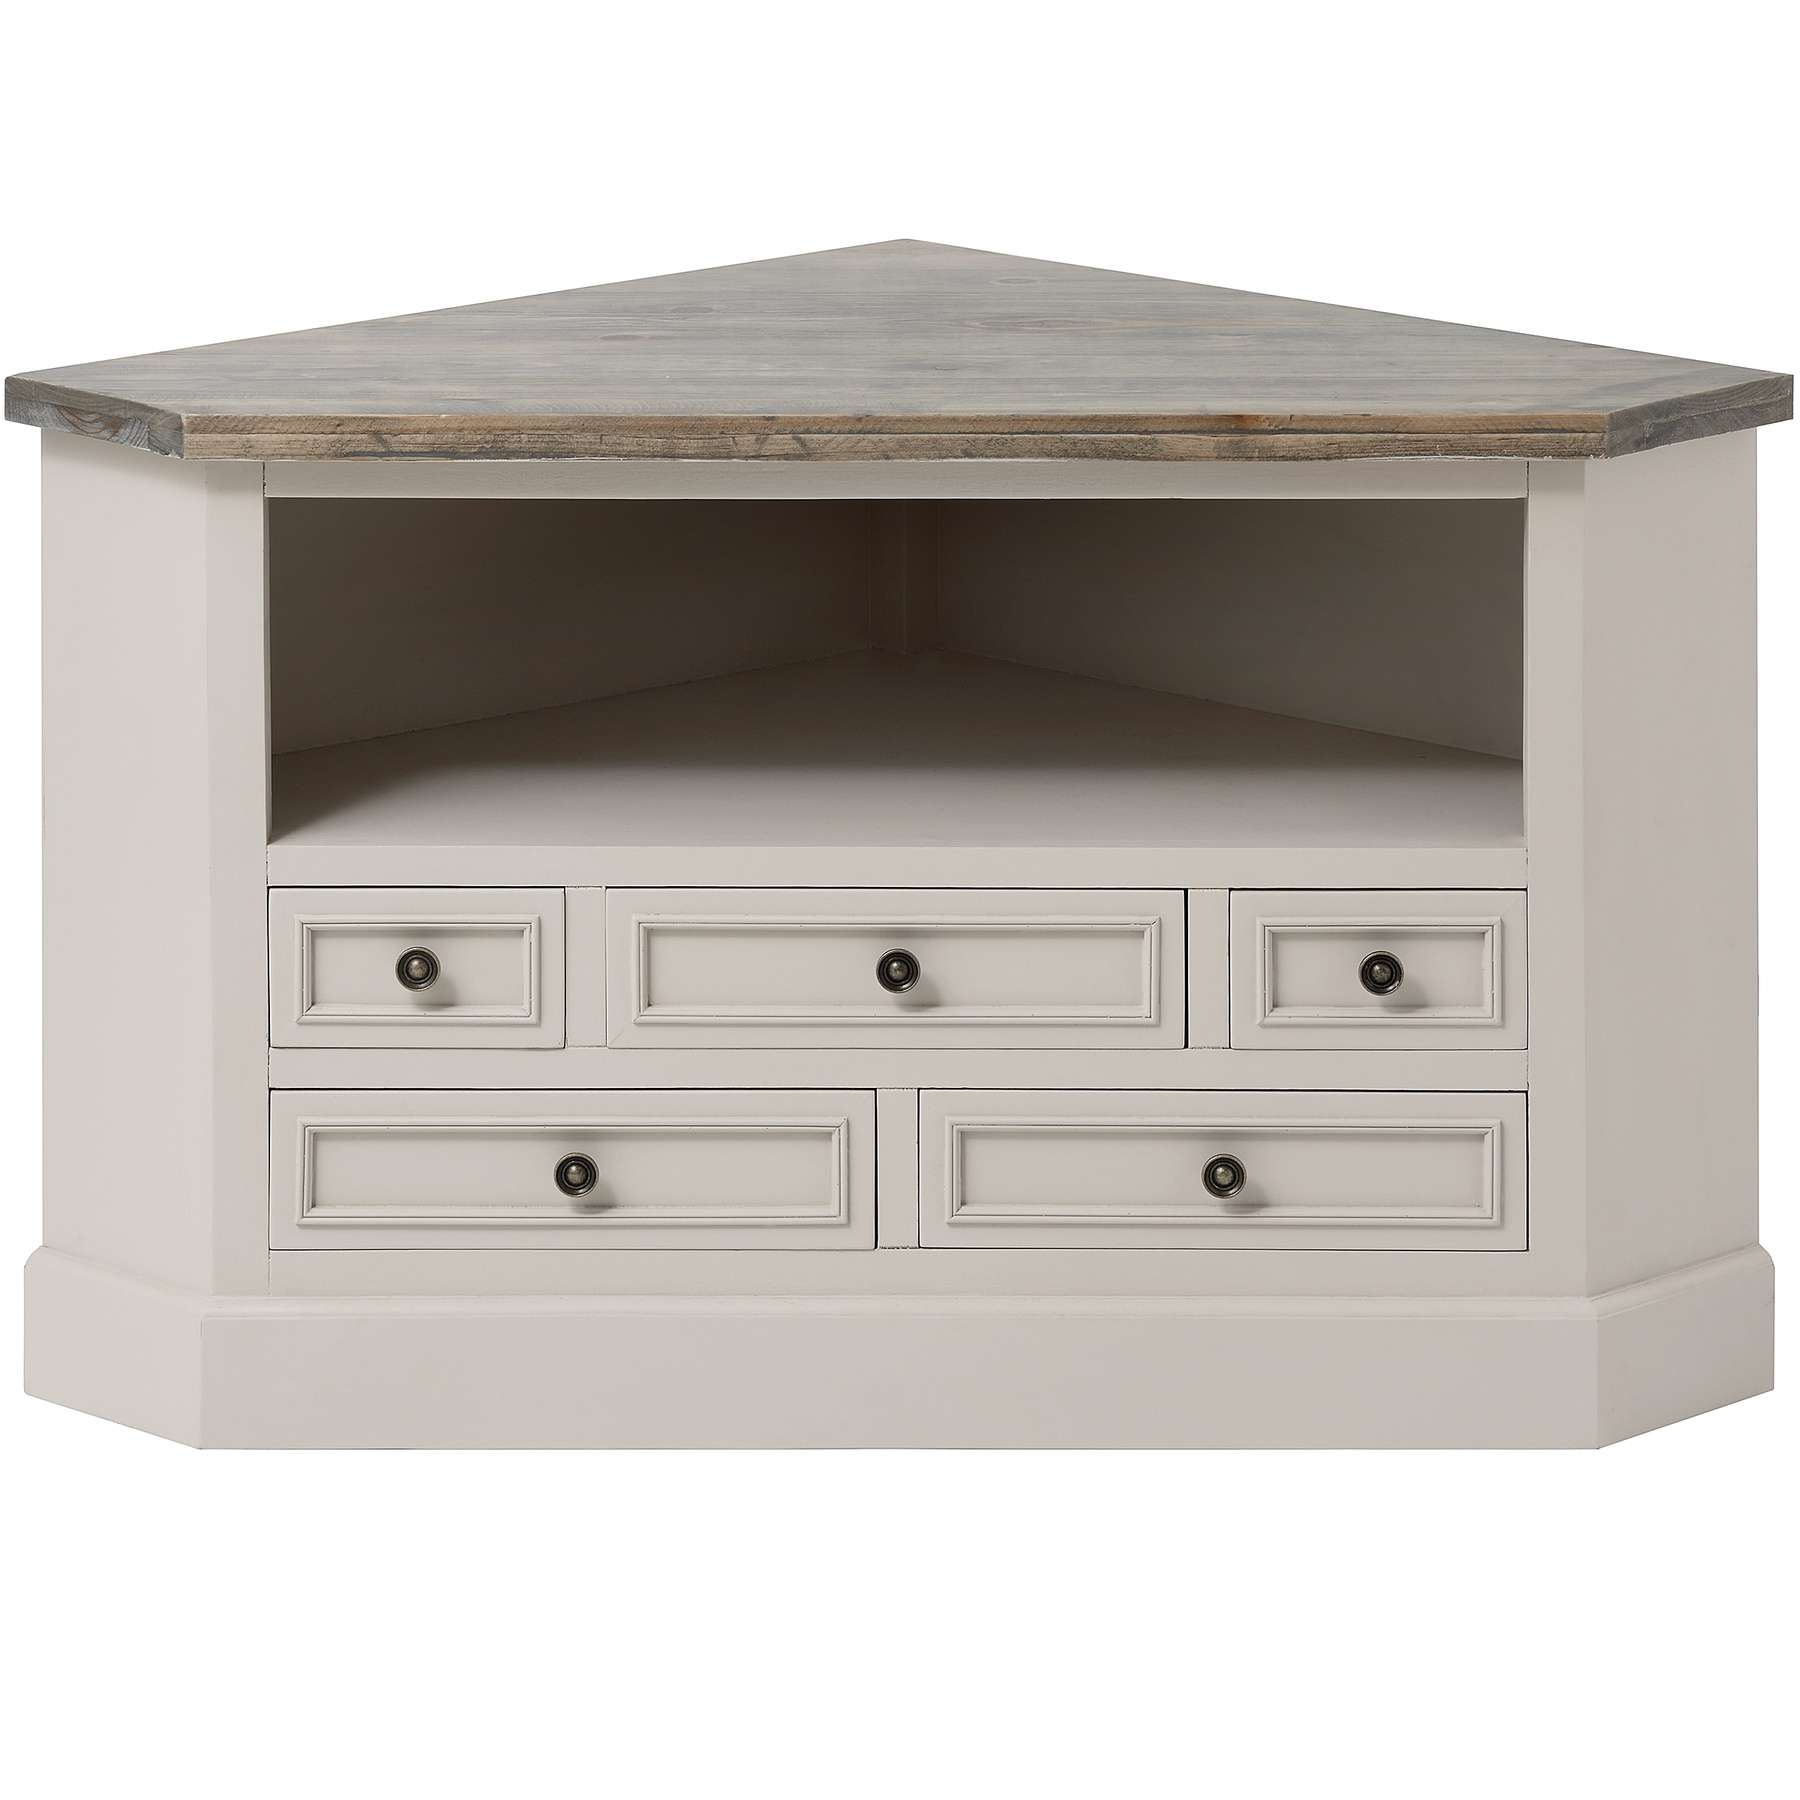 Rustic White Painted Walnut Wood Corner Tv Stand With Drawers Of Intended For Rustic White Tv Stands (View 14 of 20)